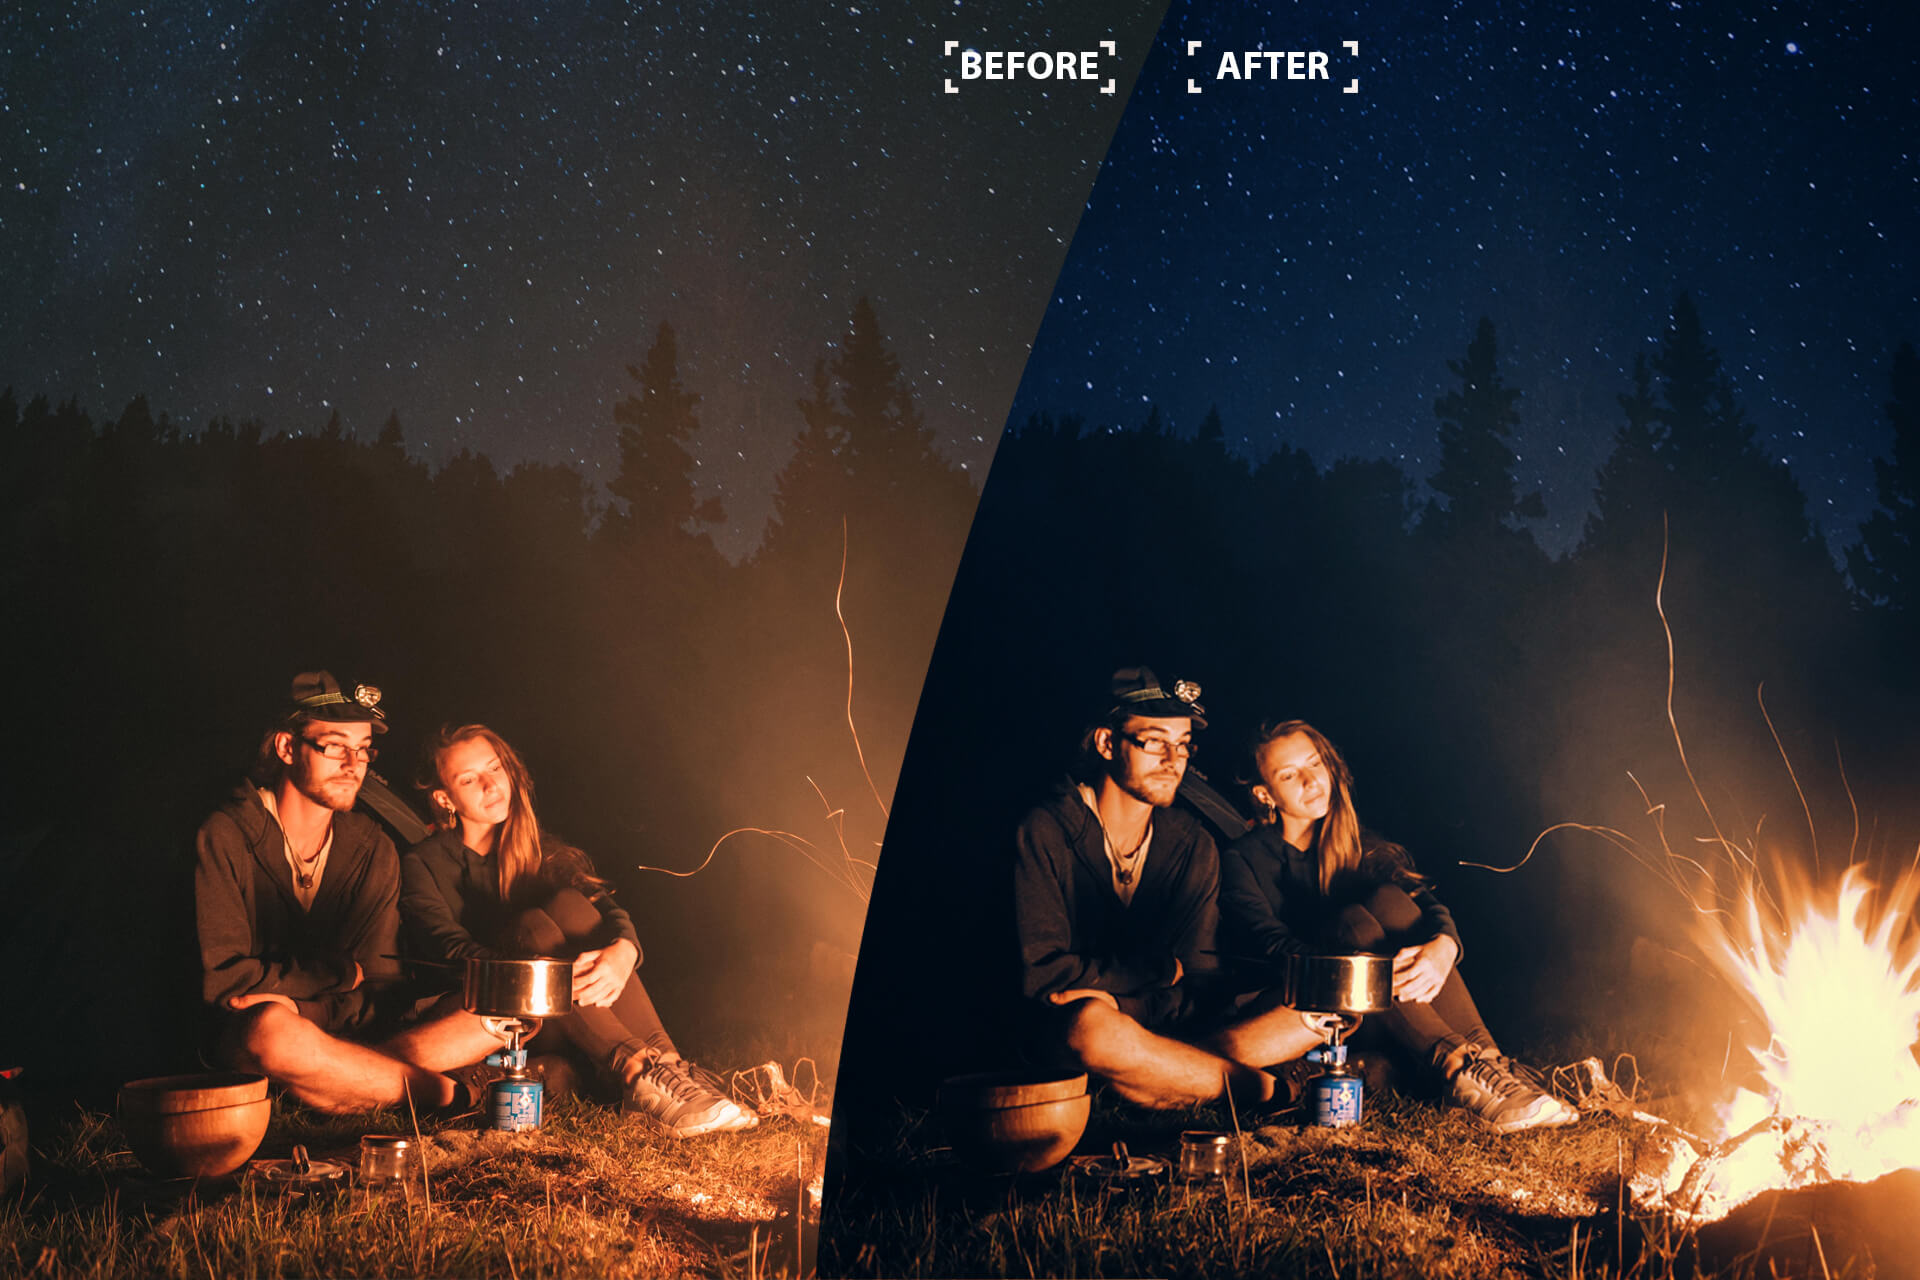 Cinematic Color Grading 01 Premium photoshop action example image 7